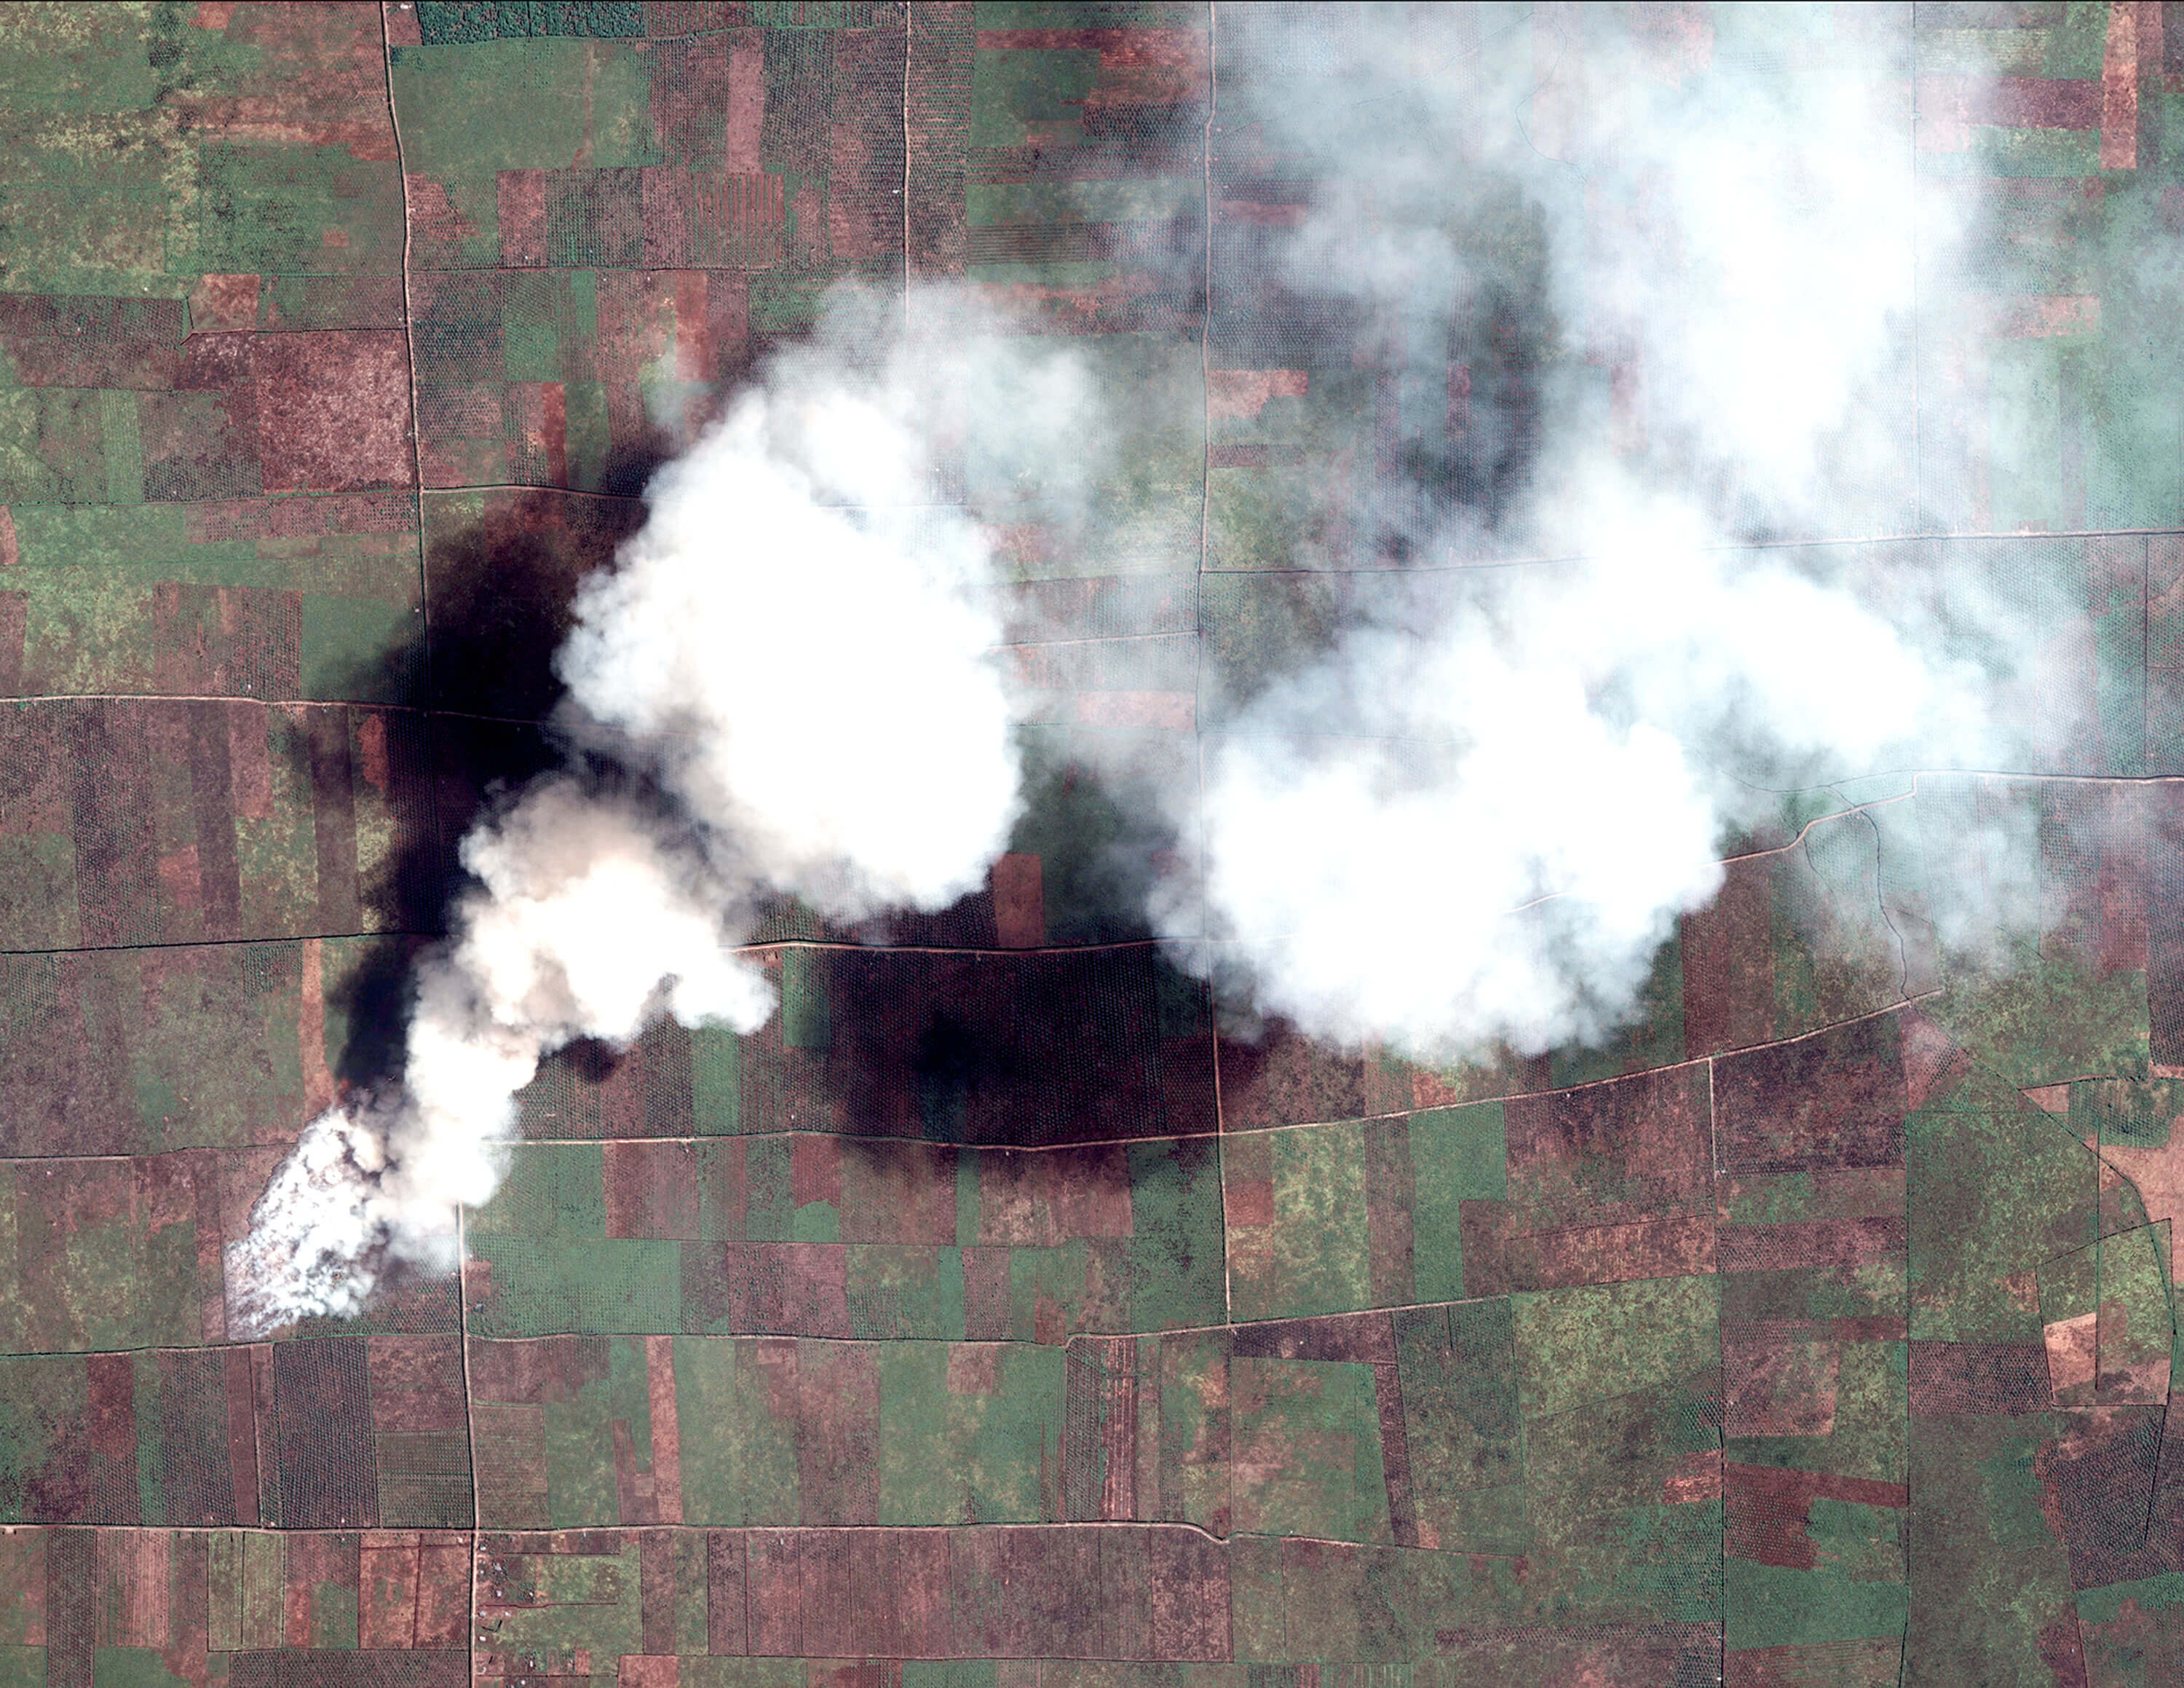 Agricultural fire in Sumatra, Indonesia, made available through a partnership between Global Forest Watch Fires and Digital Globe.